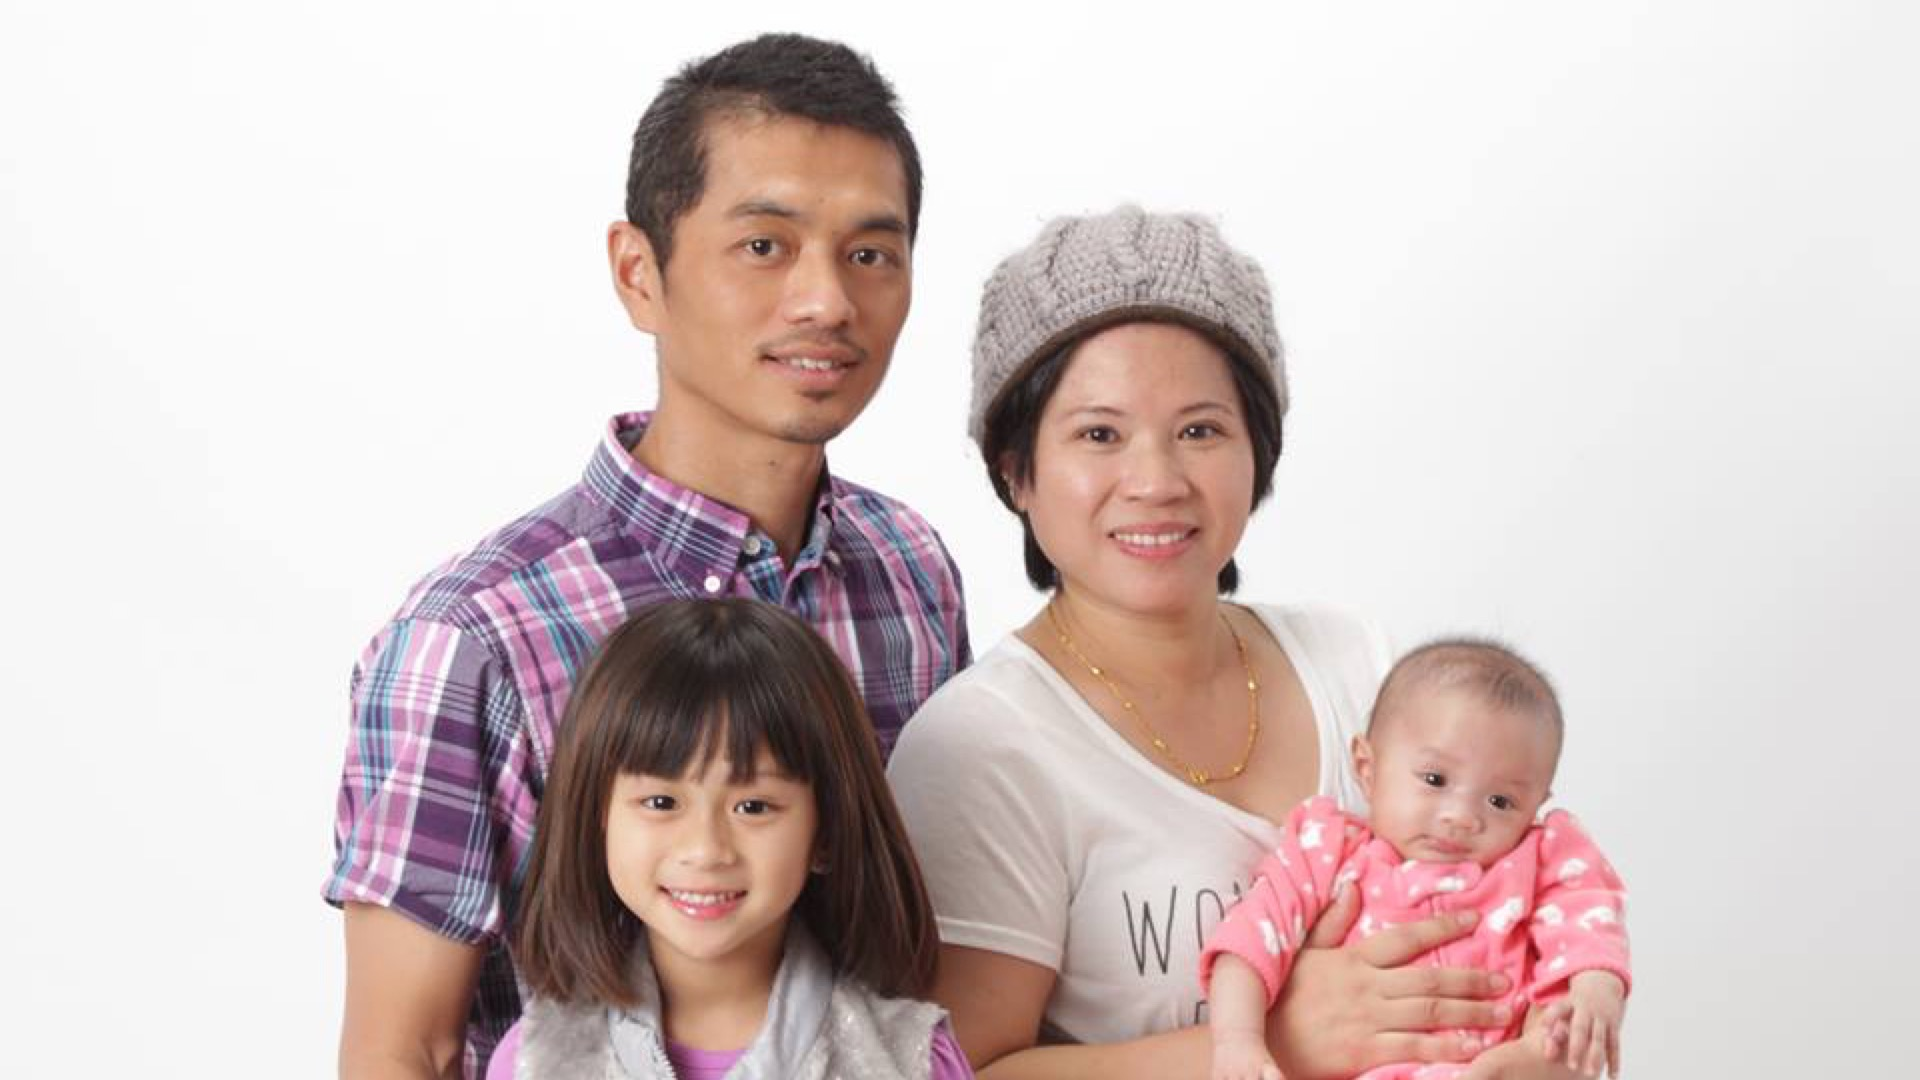 After fleeing their home in Myanmar and resettling in the U.S., refugees Wai Hinn Oo and his wife, Nang Shwe Thein recently celebrated five years of life in Oshkosh, WI.